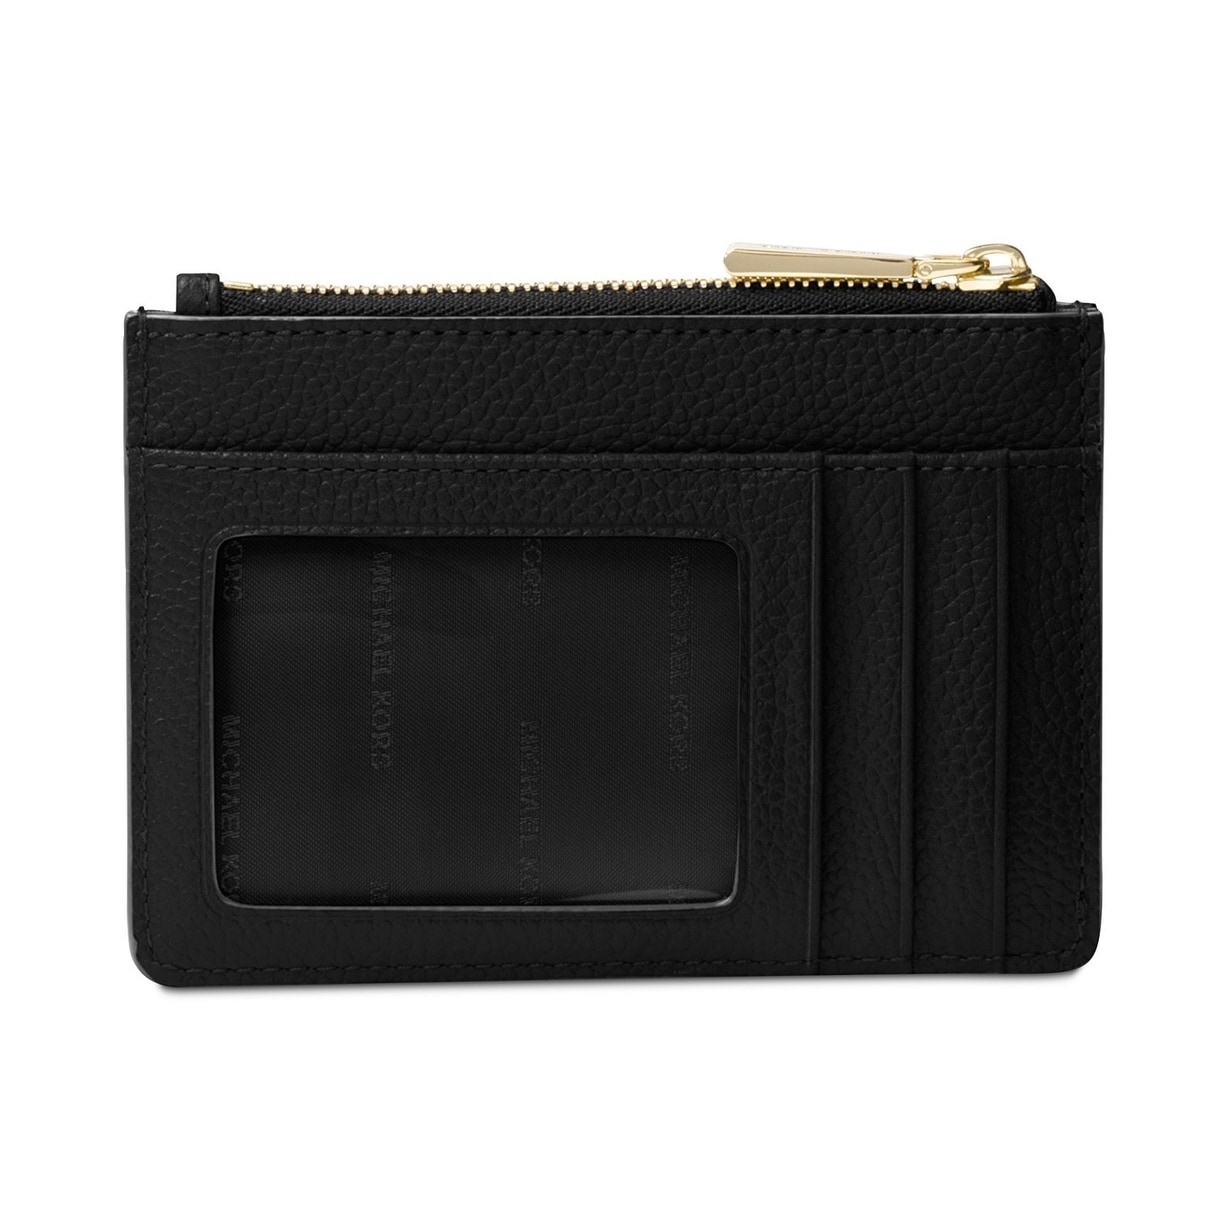 82f85c08d91d Shop MICHAEL Michael Kors Mercer Small Coin Purse Black - Free Shipping  Today - Overstock - 25463858